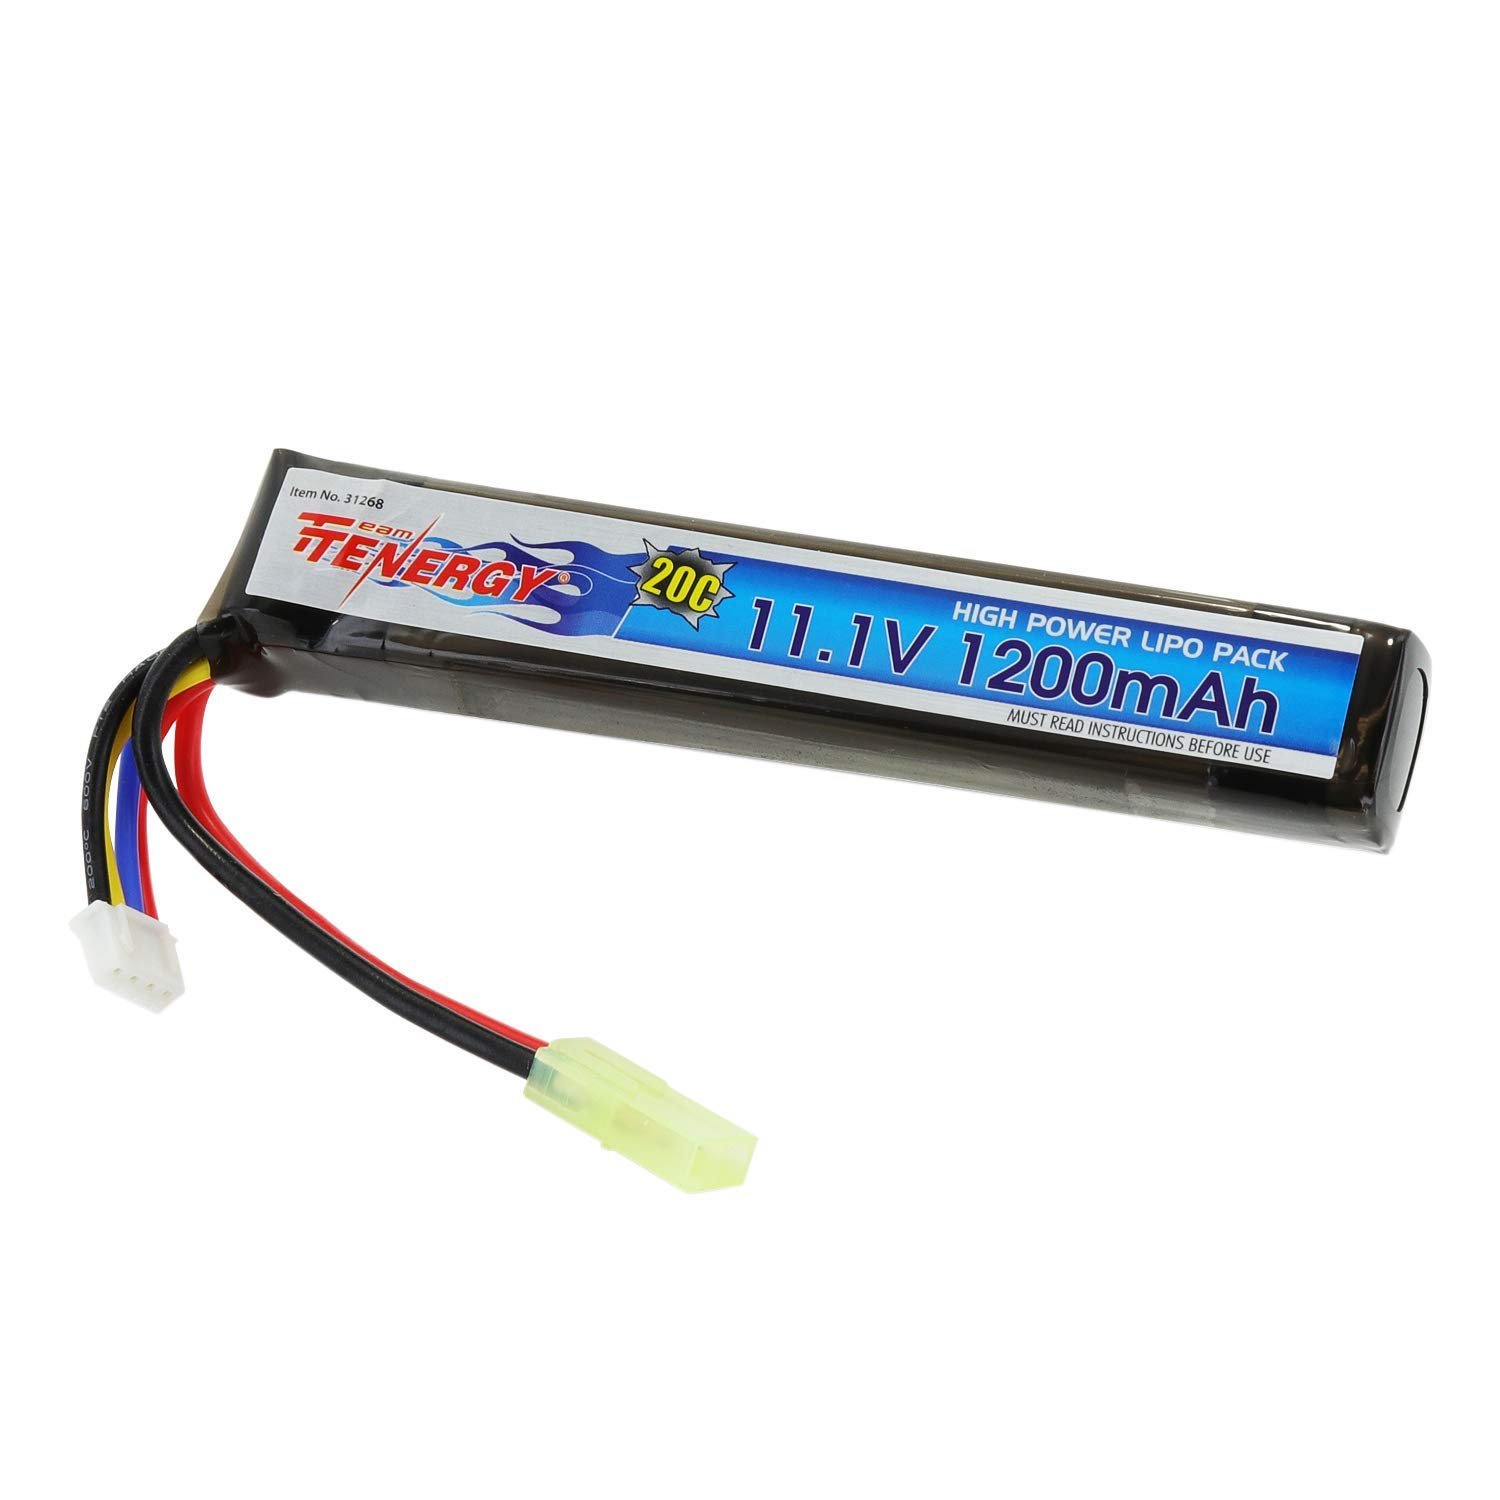 Tenergy 11.1V LiPo Airsoft Battery 1200mAh 20C Short Stick Battery Pack with Mini Tamiya Connector for AEG, Airsoft Guns AK47, MP5k, MP5 PDW, RPK, PKM